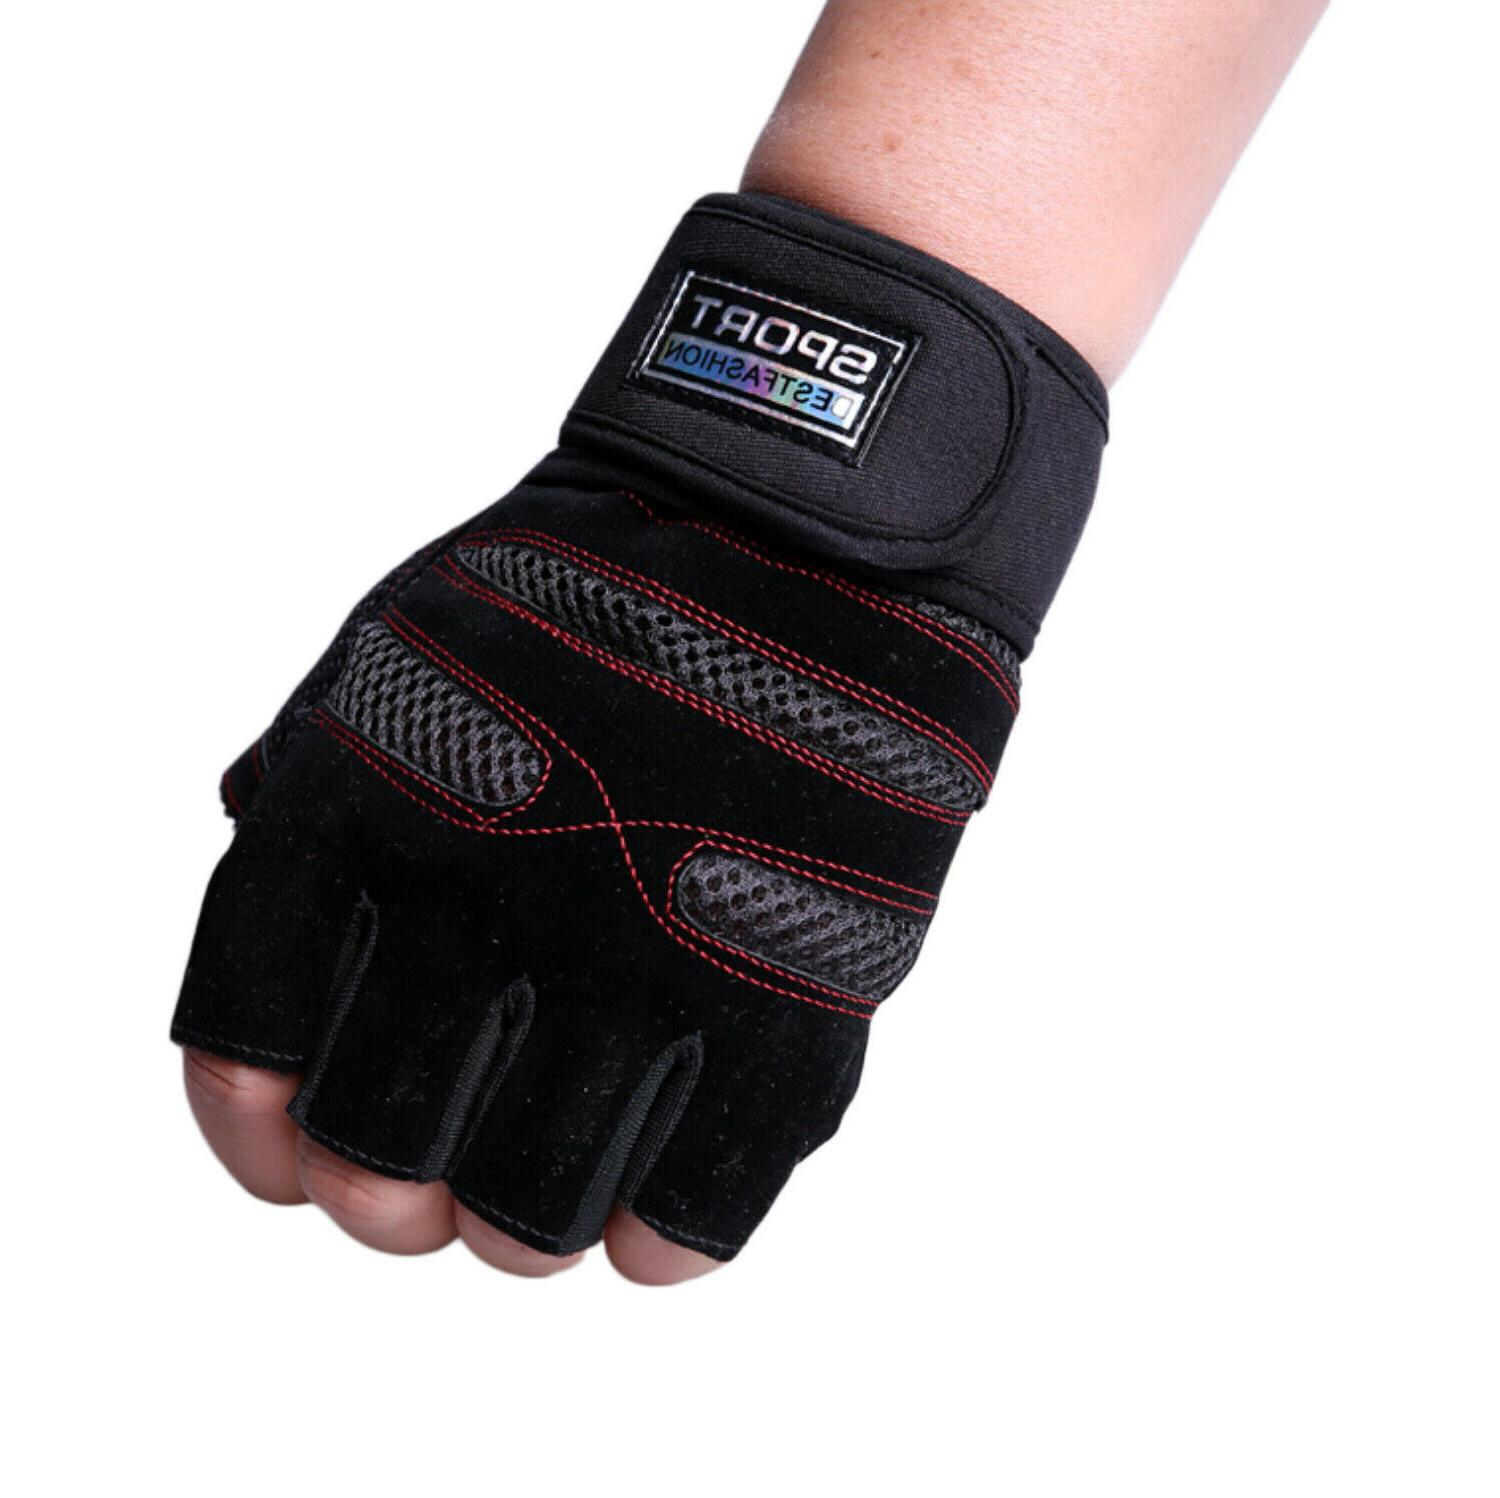 Wrist Training Fitness Gym Gloves